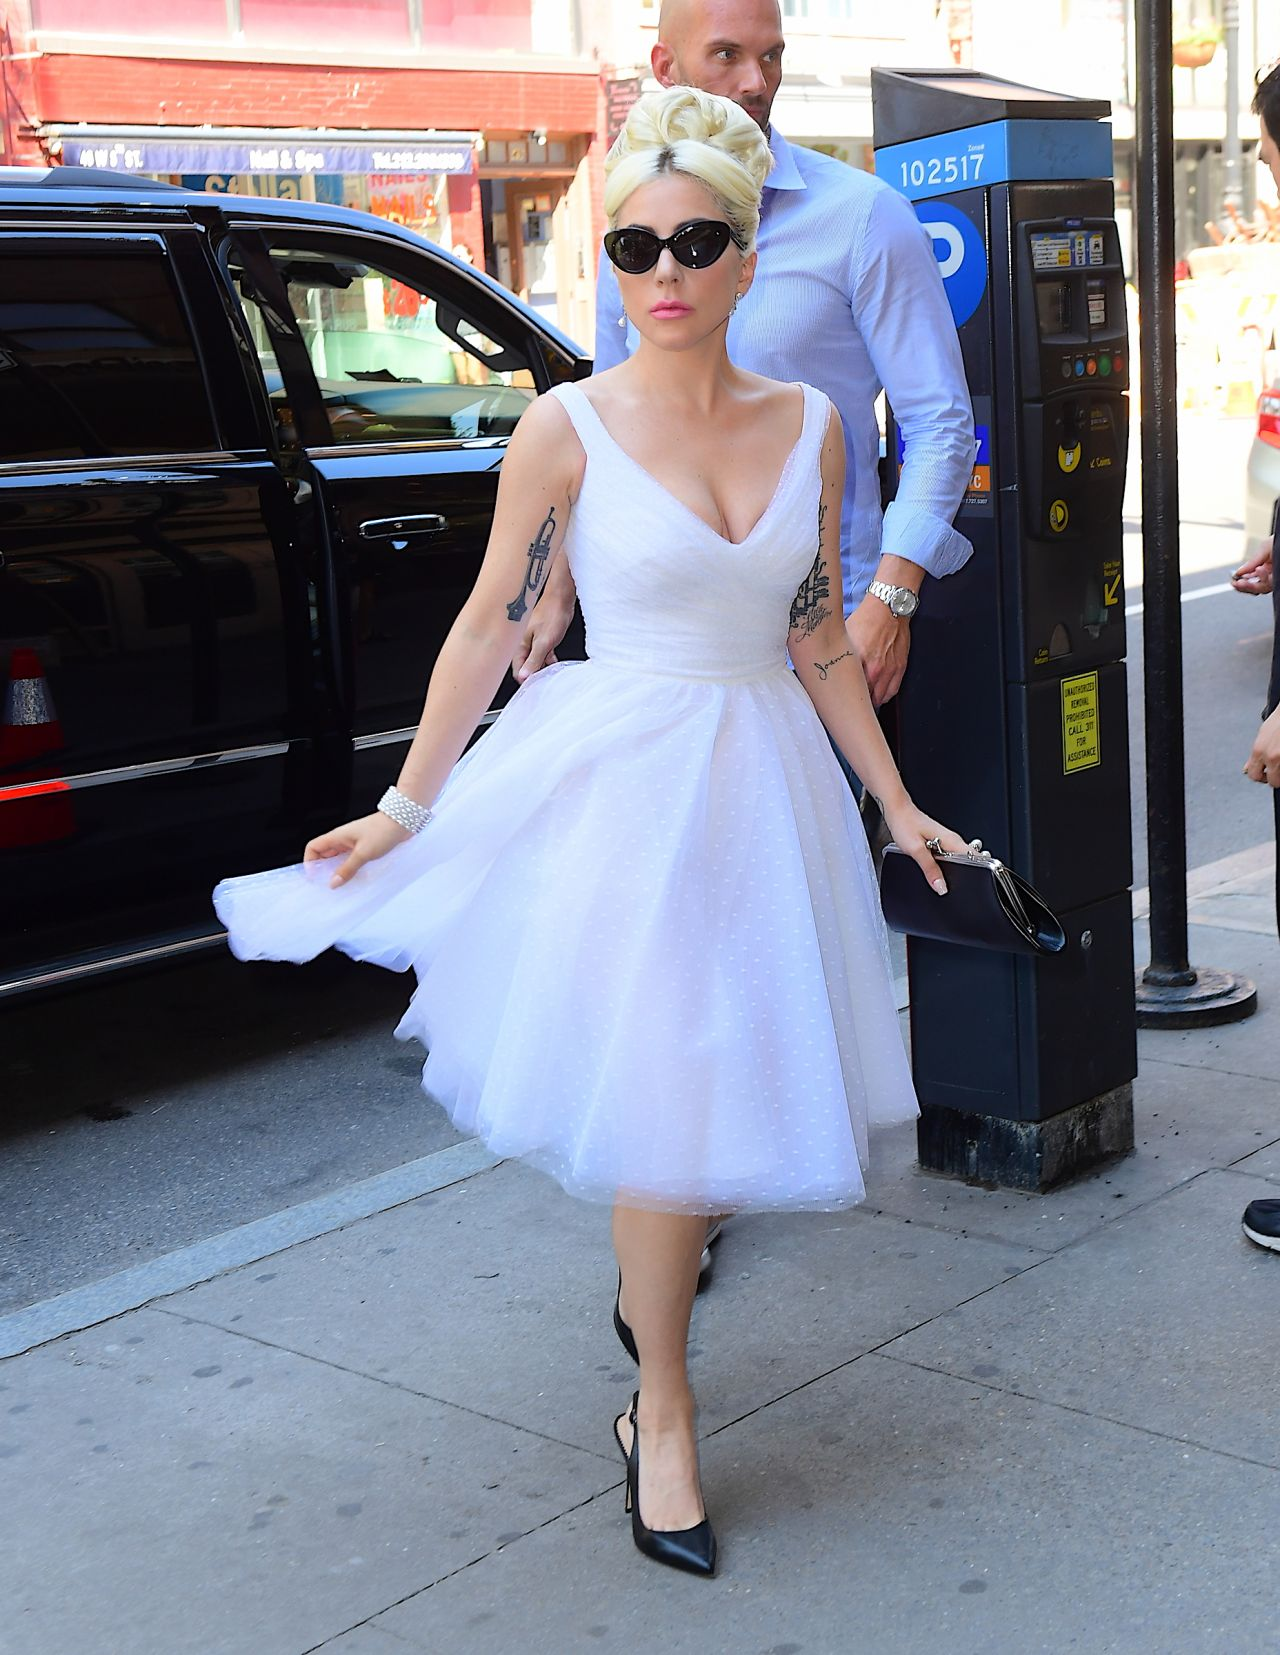 lady-gaga-in-marilyn-monroe-style-dress-new-york-city-05-24-2018-13.jpg